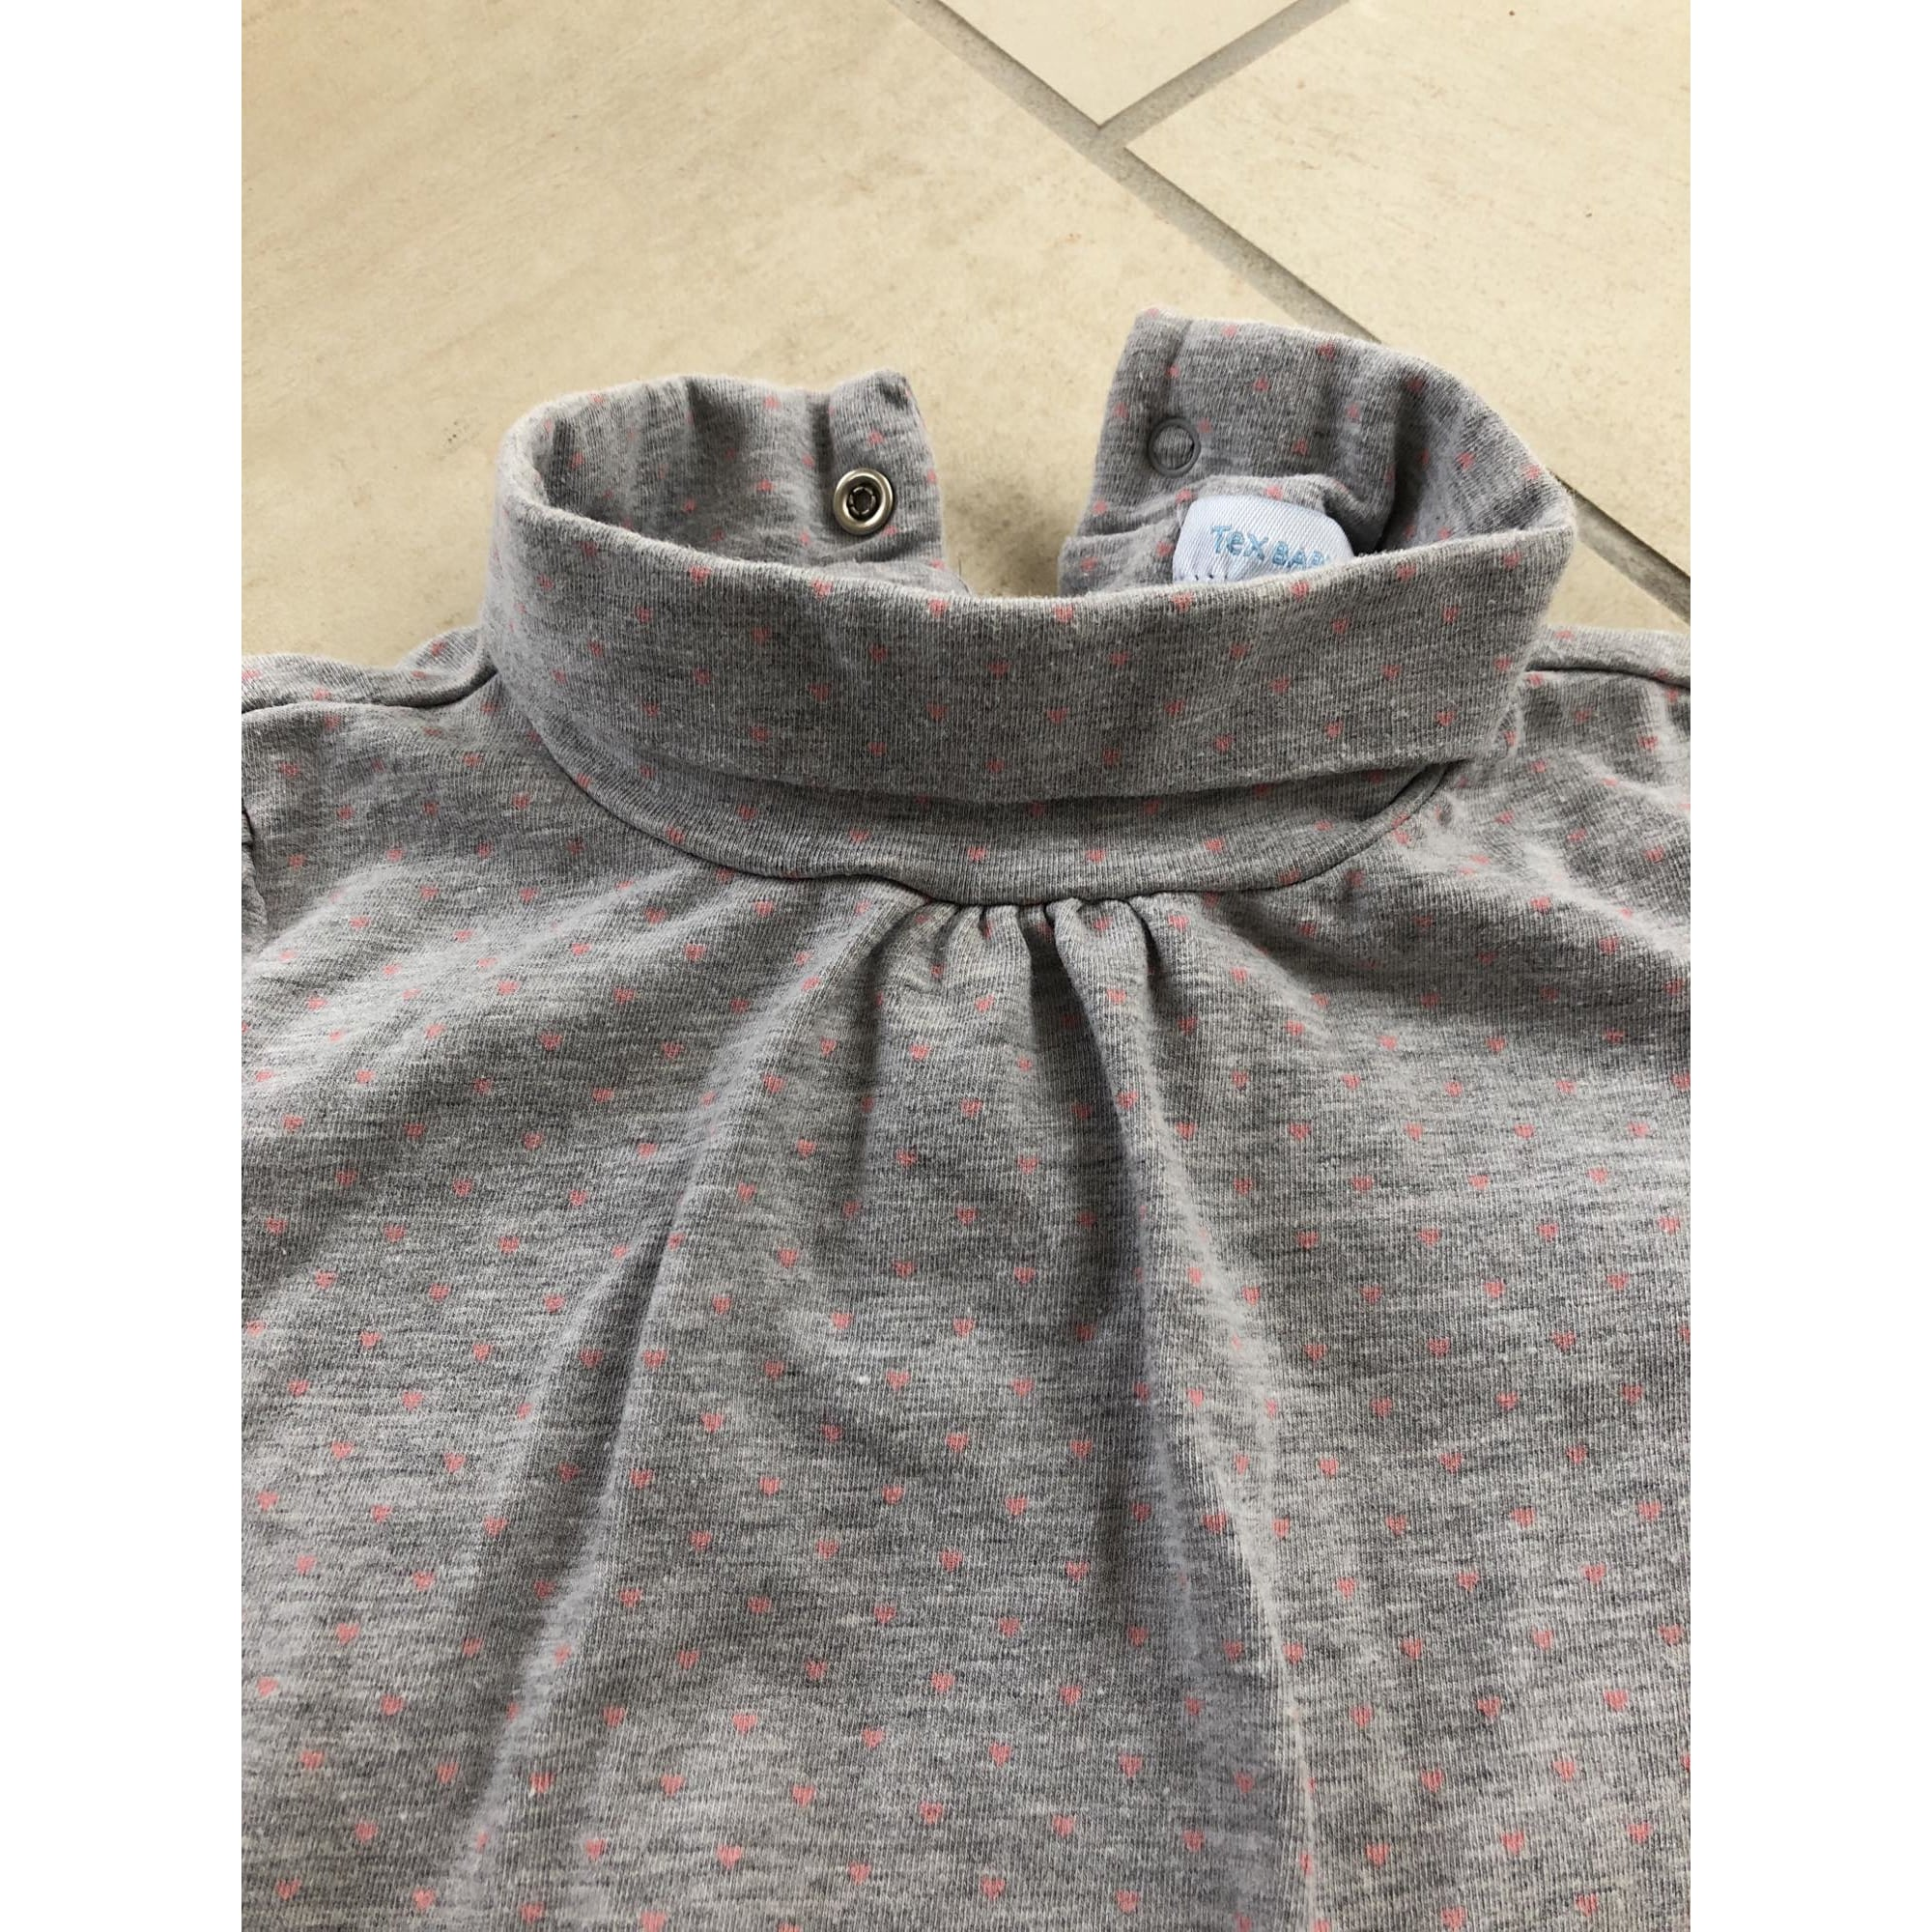 Top, tee shirt TEX BABY Gris, anthracite